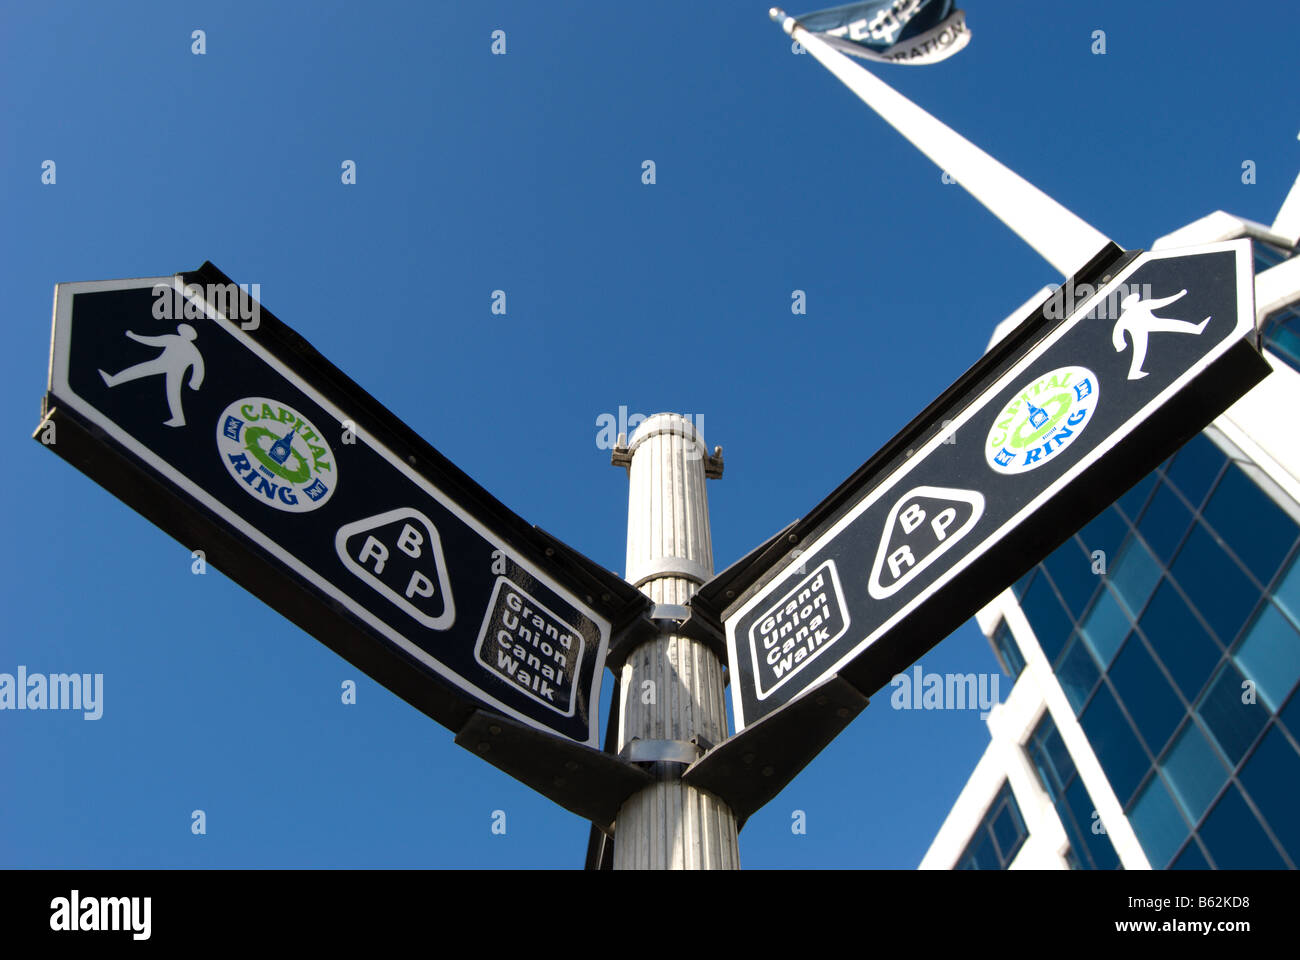 signs for grand union canal walk and capital ring, on the great west road, or A4, near brentford and isleworth, - Stock Image